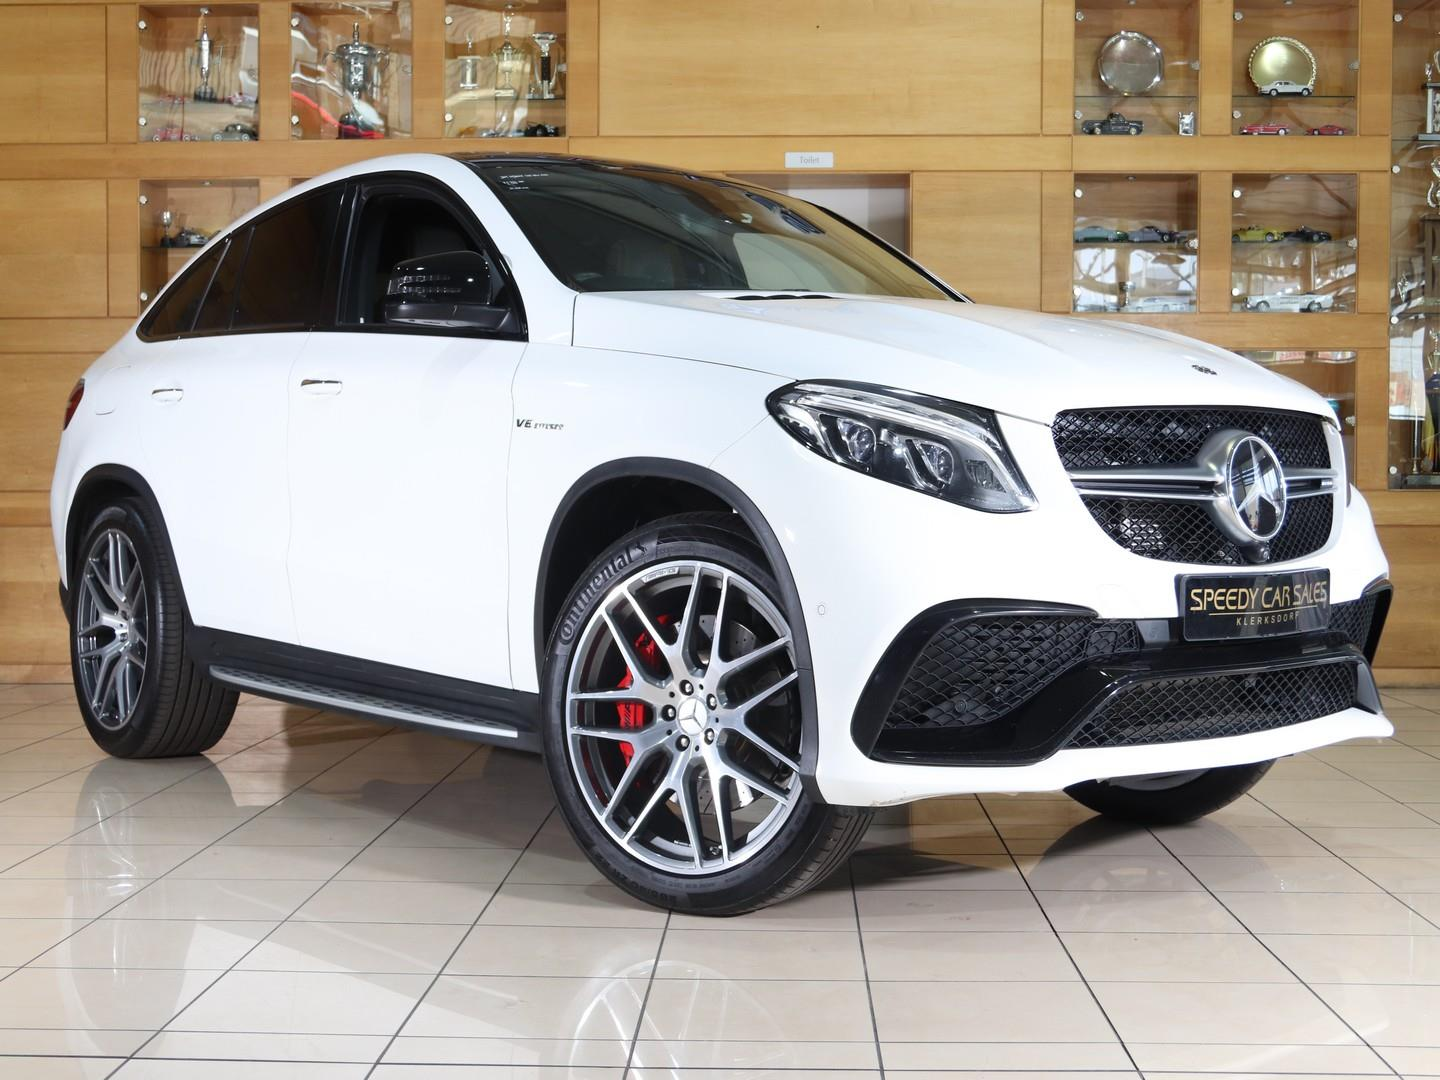 Mercedes-AMG GLE (GLE63 S Coupe) at Speedy Car Sales